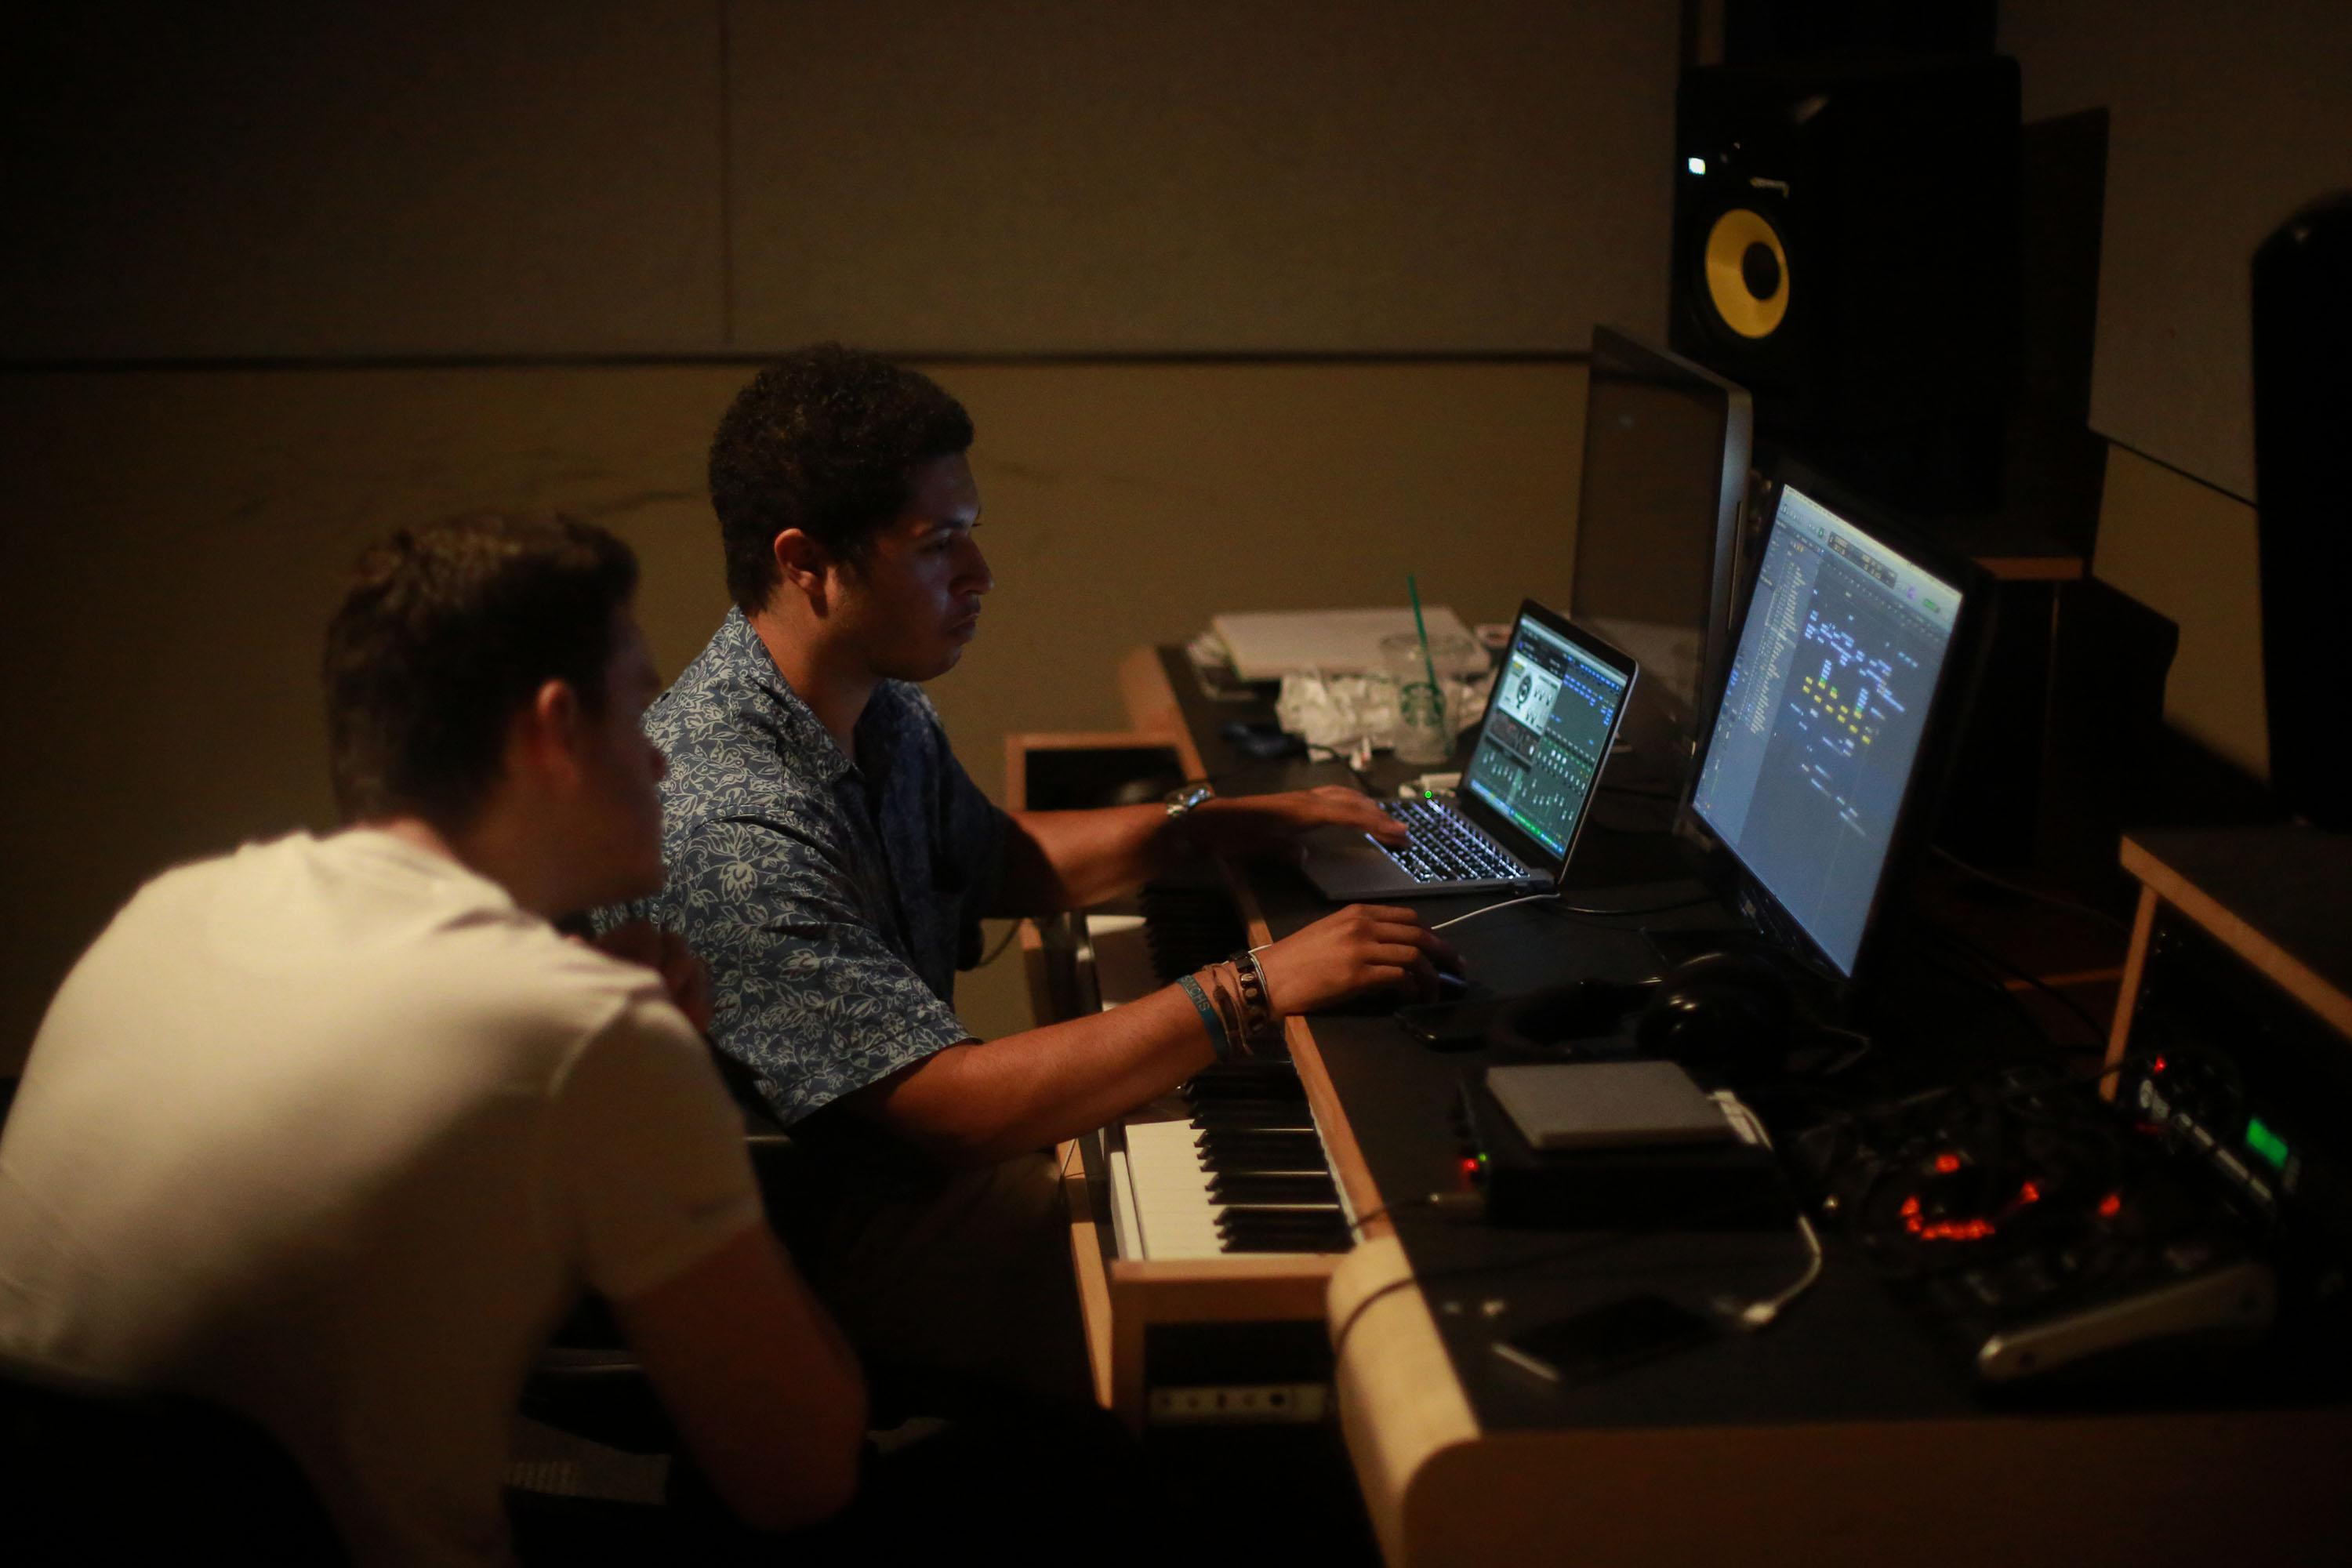 Opinion: Modern musicians need to produce music